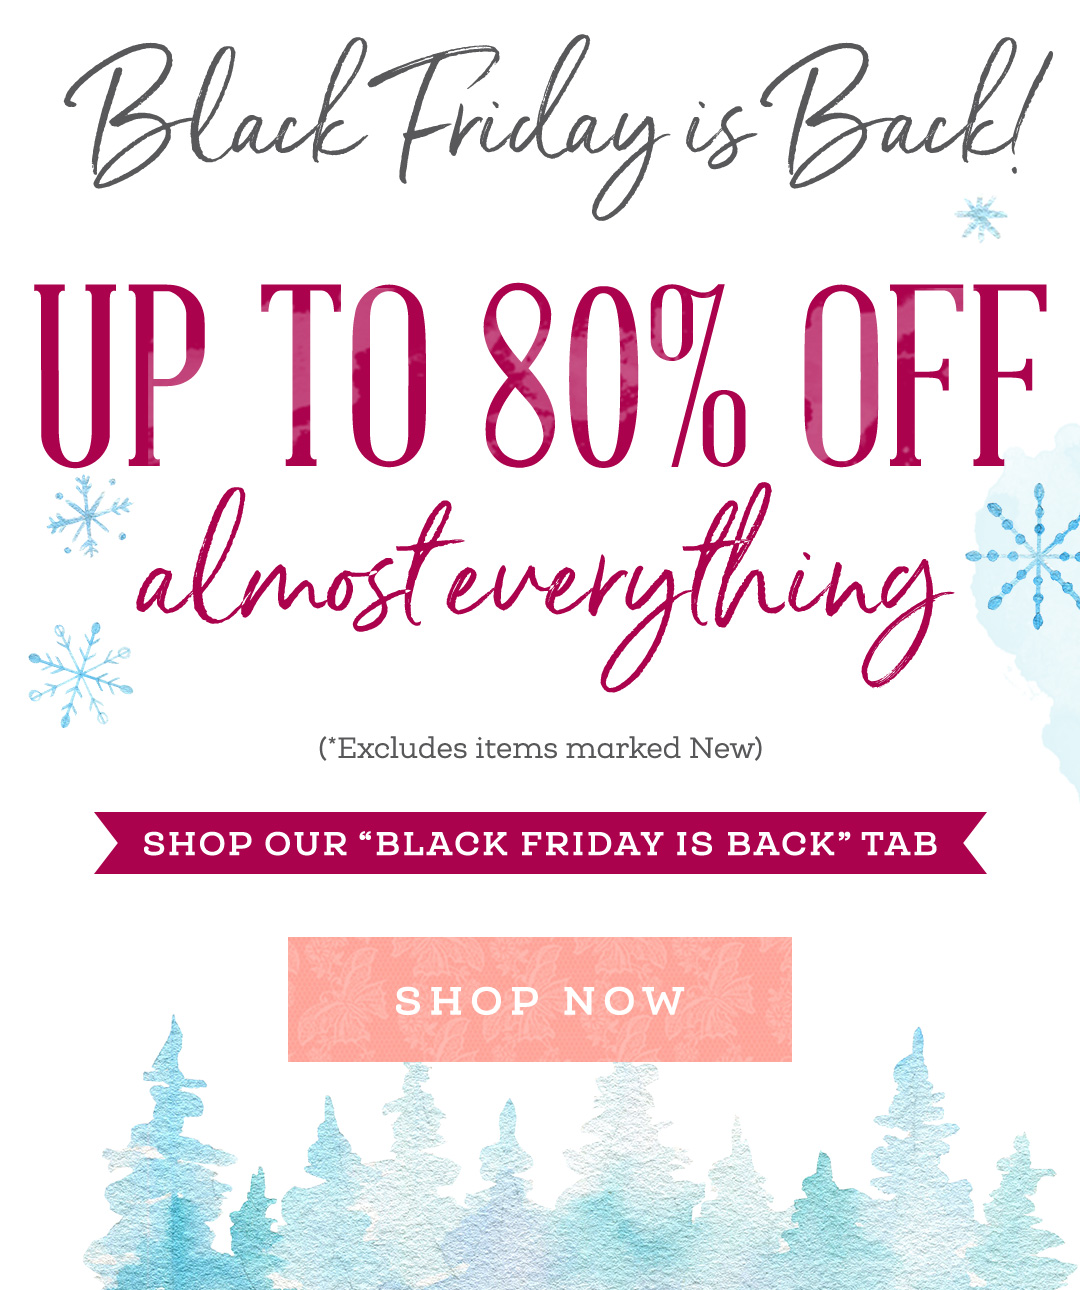 "Black Friday is Back! Up to 80% off almost everything! Excludes items marked New. | Shop our ""Black Friday is Back"" Tab >"